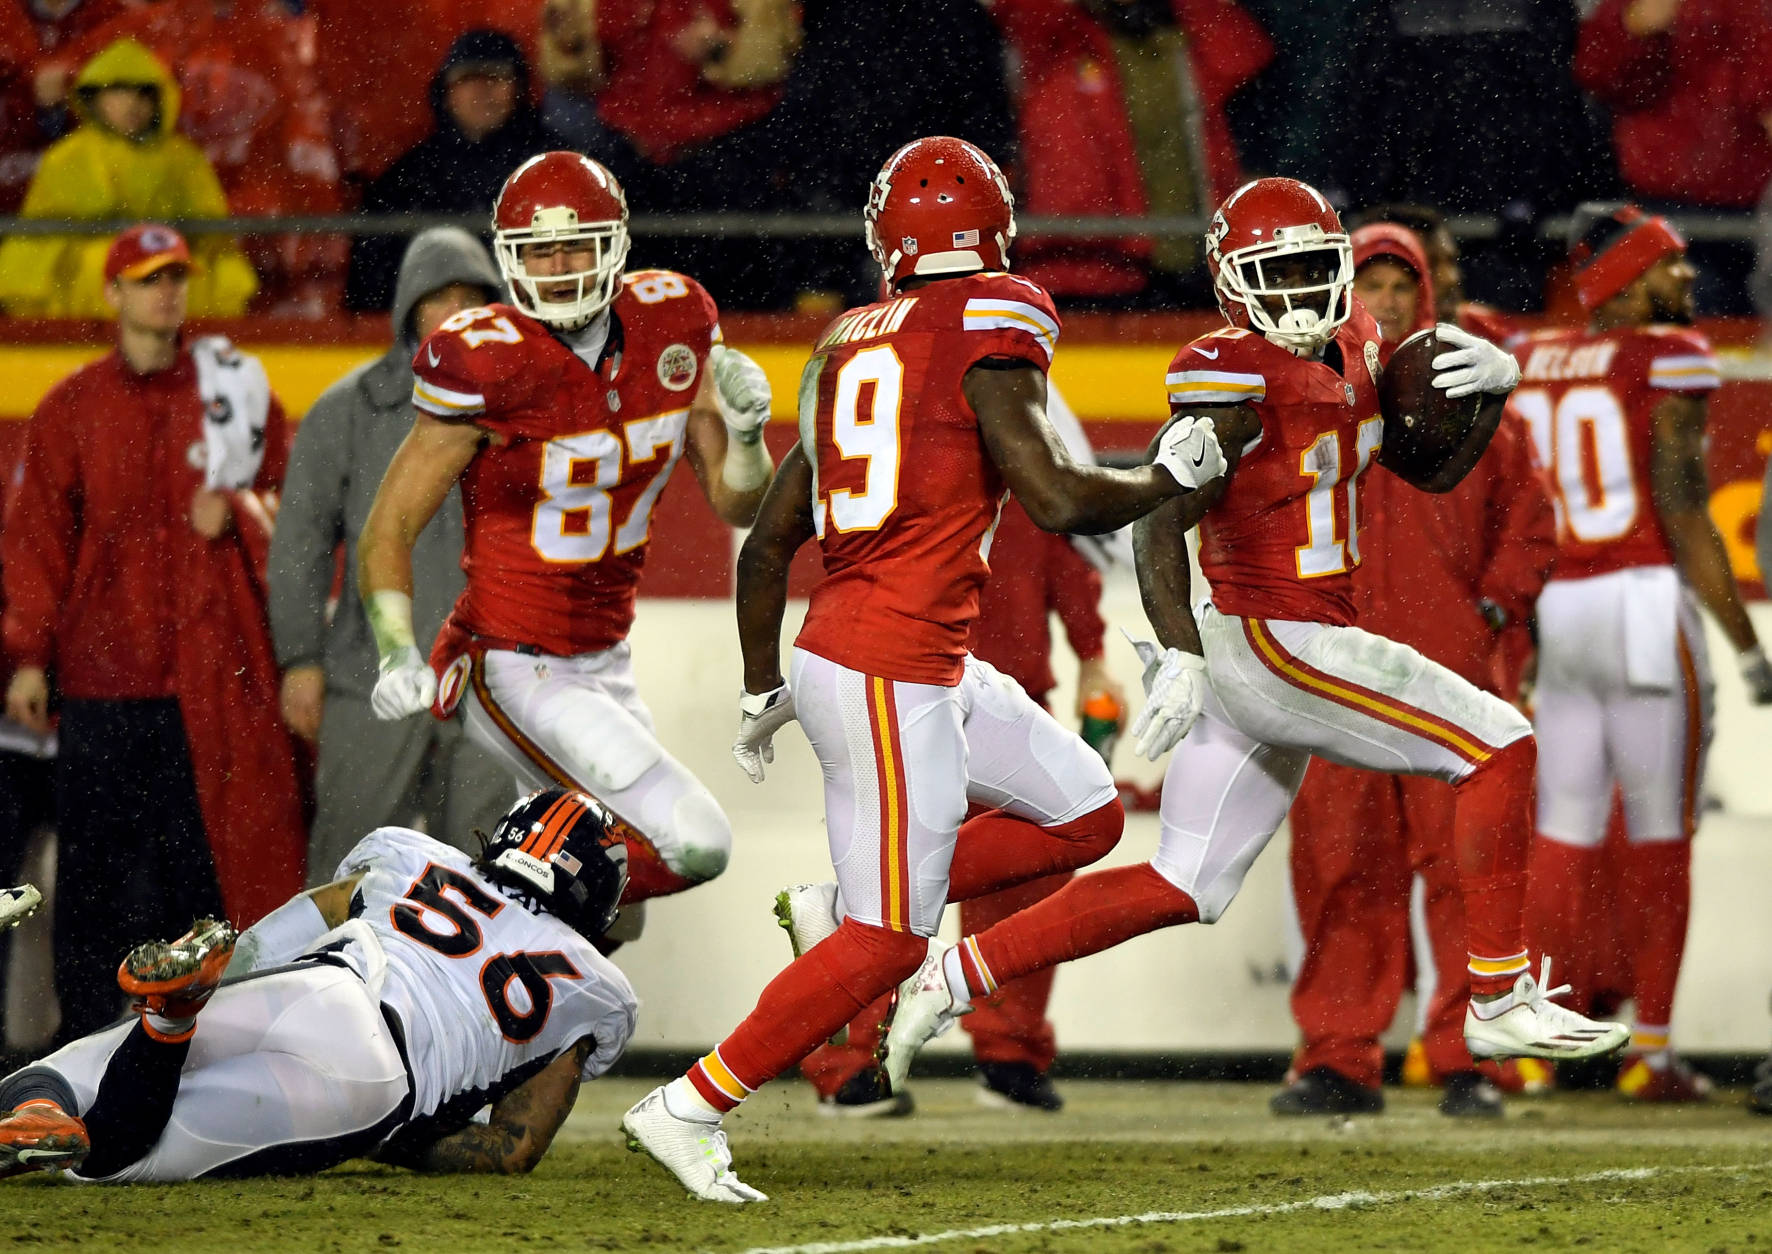 KANSAS CITY, MO - DECEMBER 25:  Tyreek Hill #10 of the Kansas City Chiefs carries the ball on his way to scoring during the 1st quarter of the game against the Denver Broncos at Arrowhead Stadium on December 25, 2016 in Kansas City, Missouri.  (Photo by Reed Hoffmann/Getty Images)